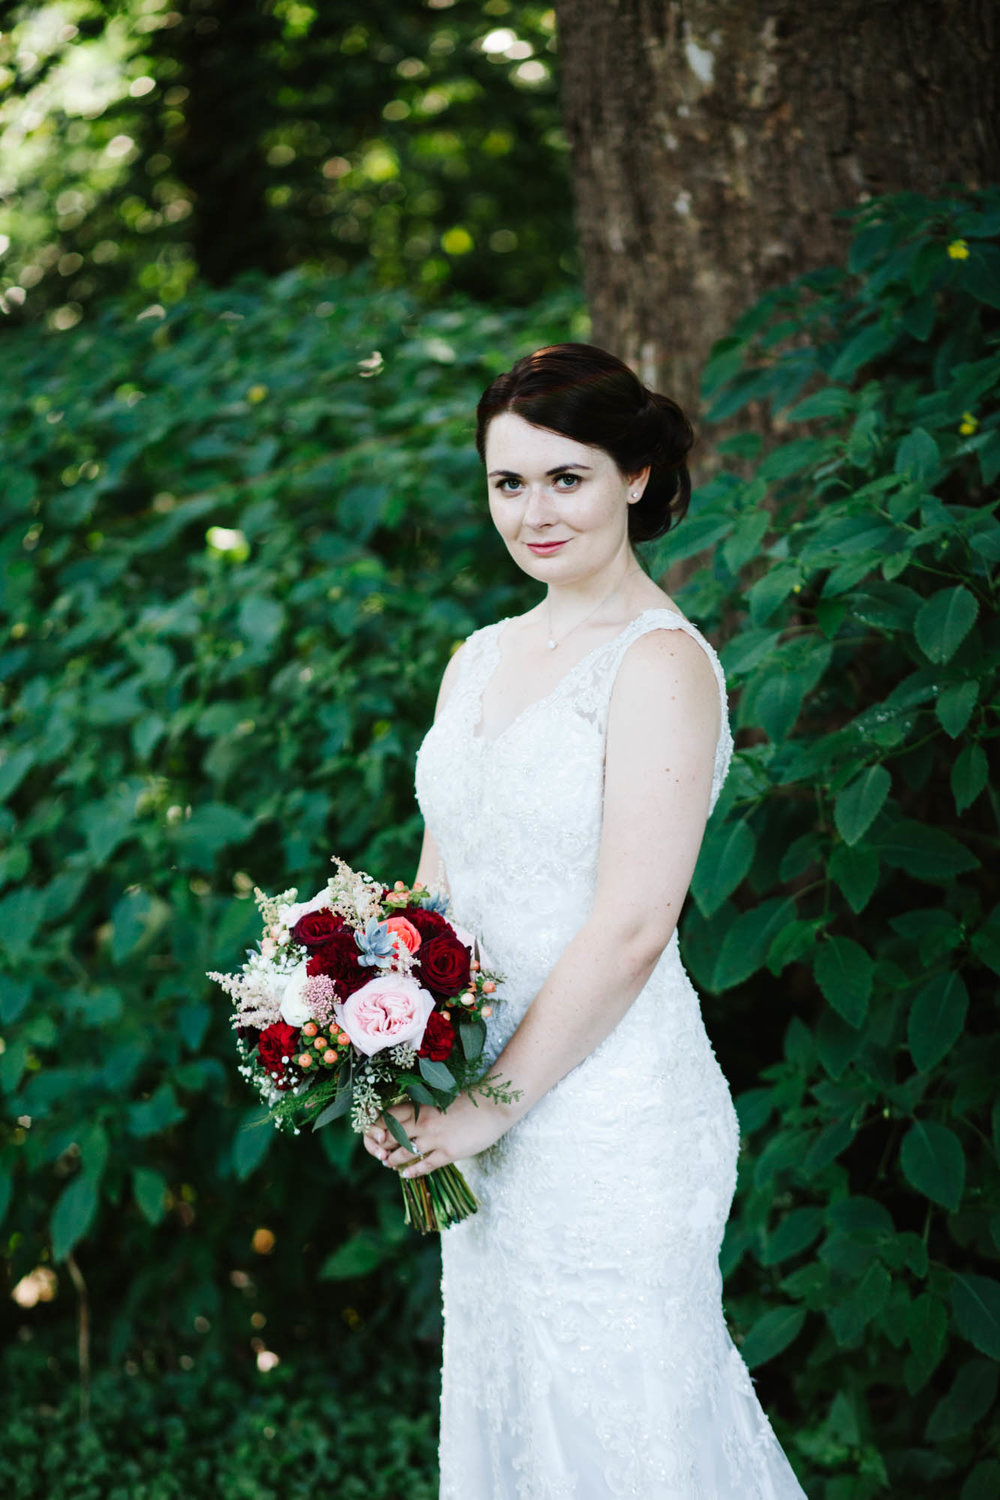 frankfortwedding-13.jpg